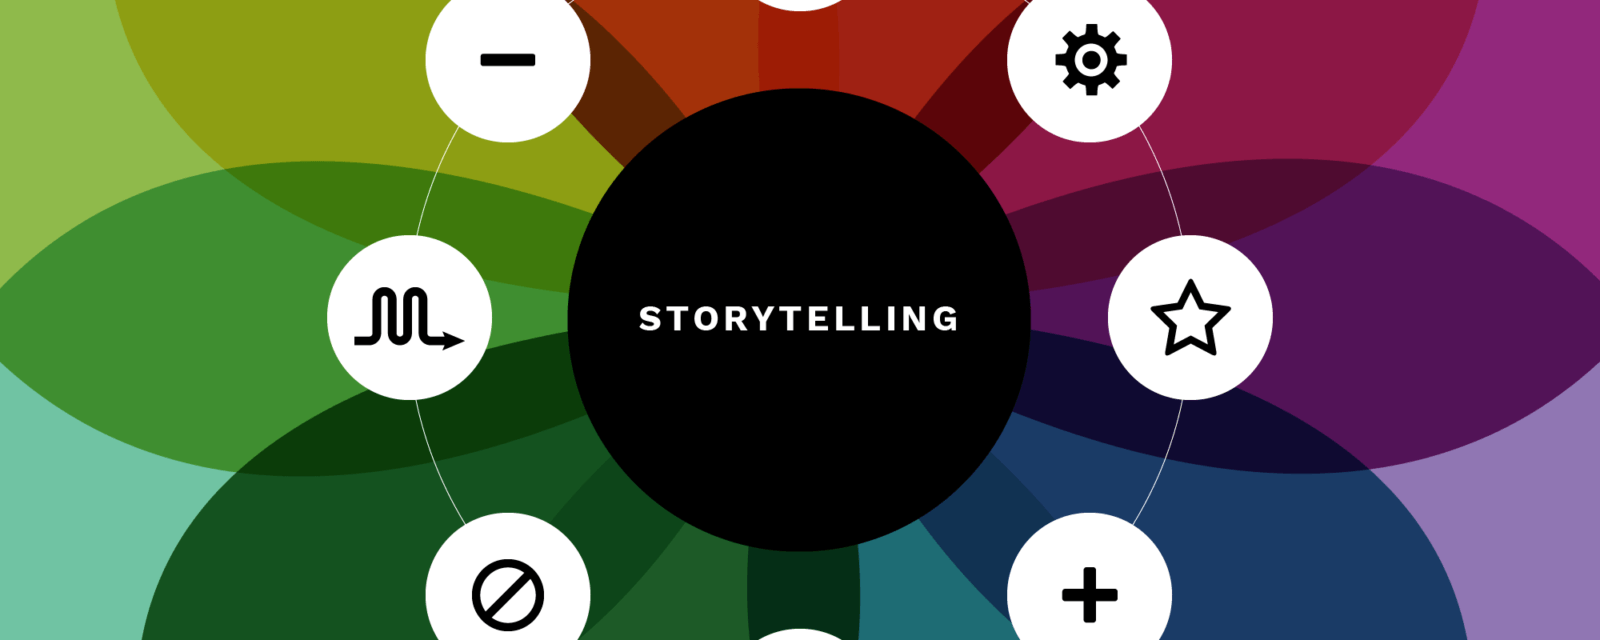 Story-techniques-in-presentations-graphic